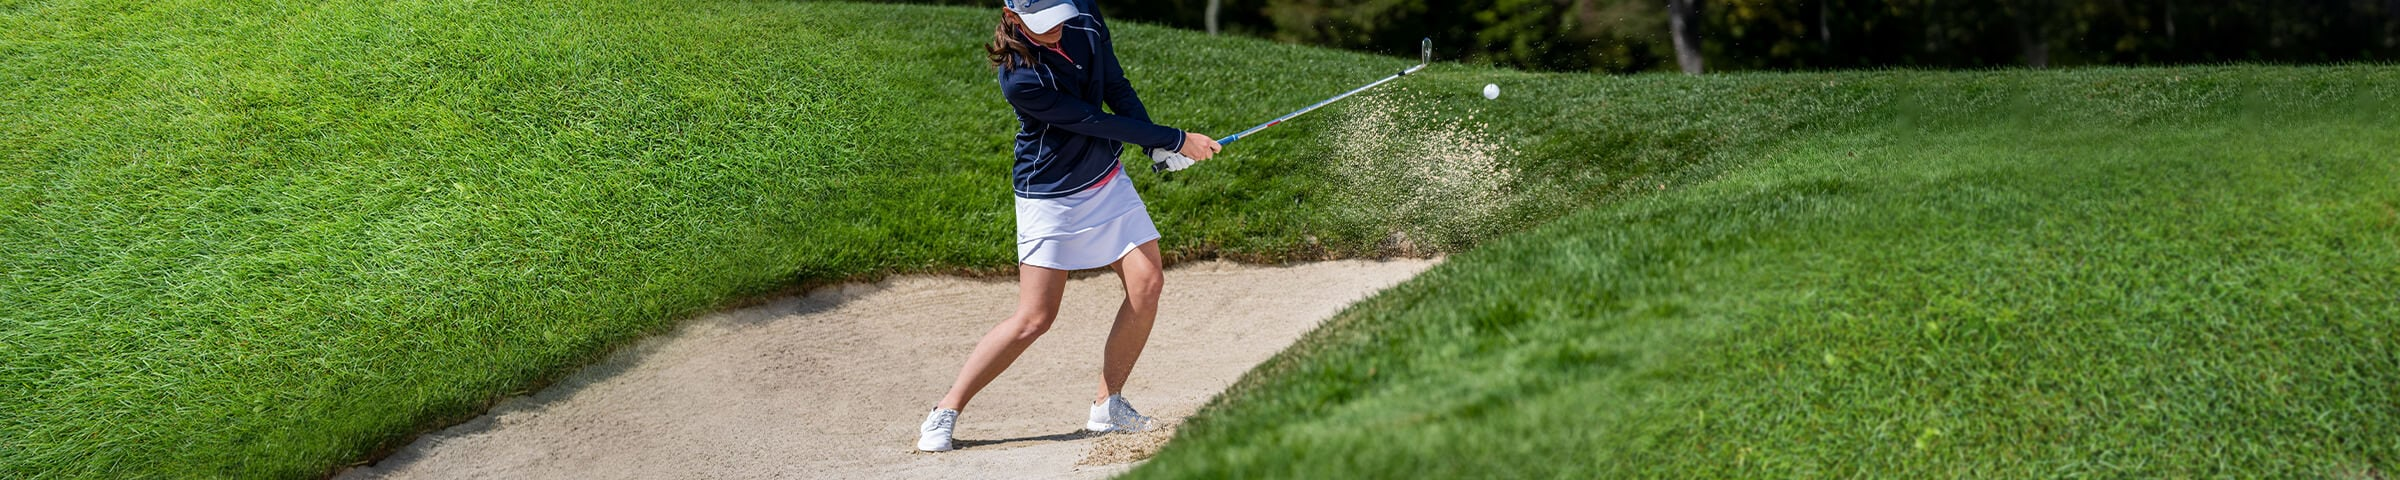 FootJoy Women's Golf Apparel - Base & Mid-Layers